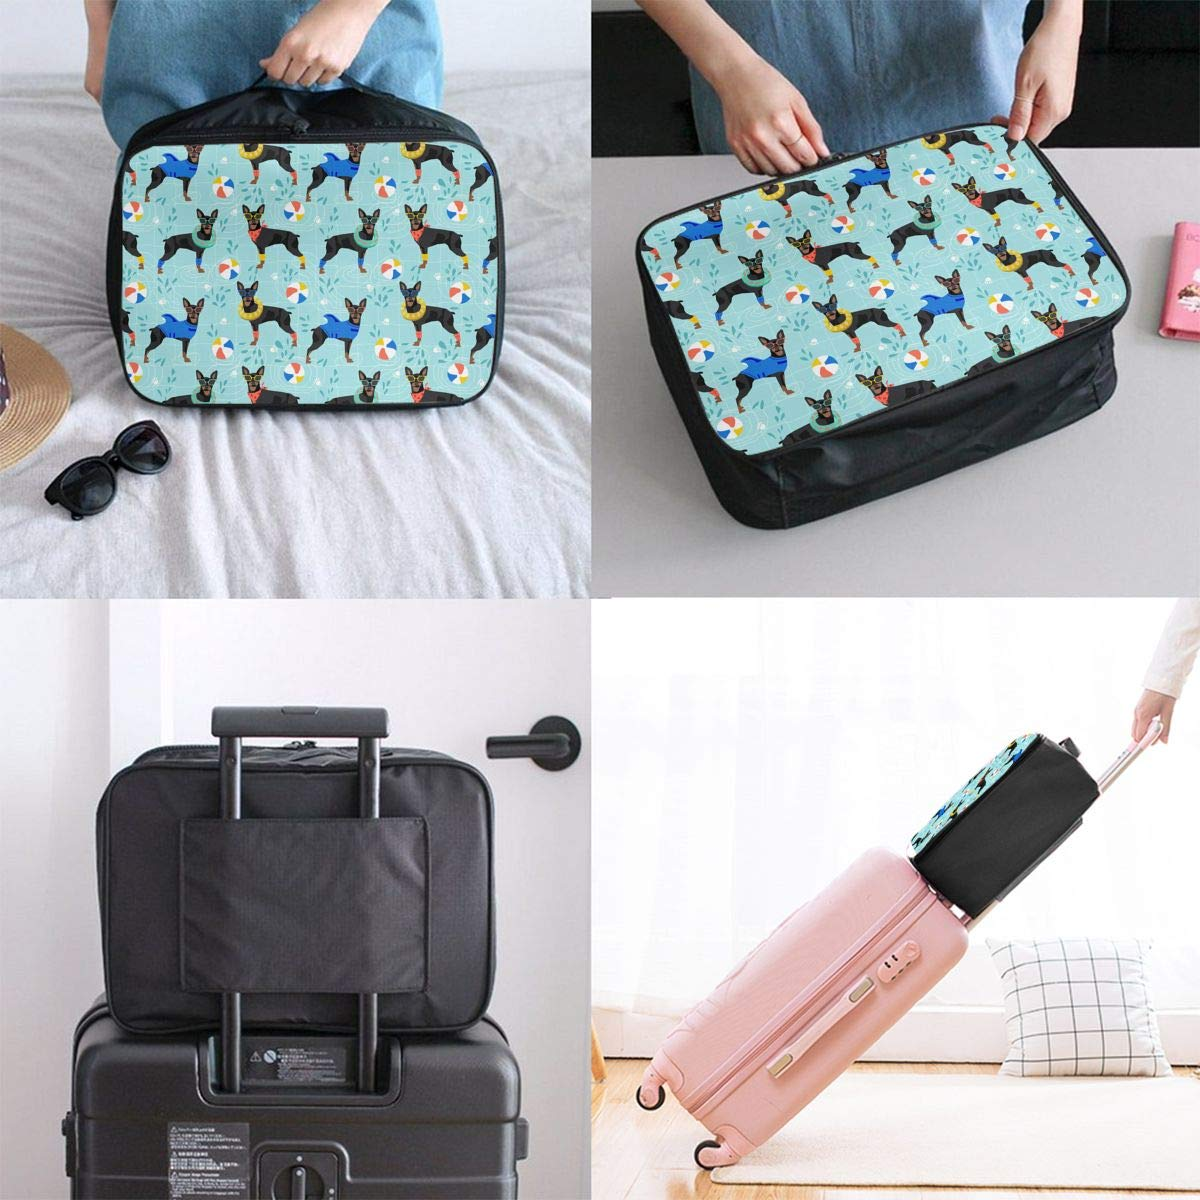 Miniature Pinscher Pool Travel Duffel Bag Waterproof Fashion Lightweight Large Capacity Portable Luggage Bag